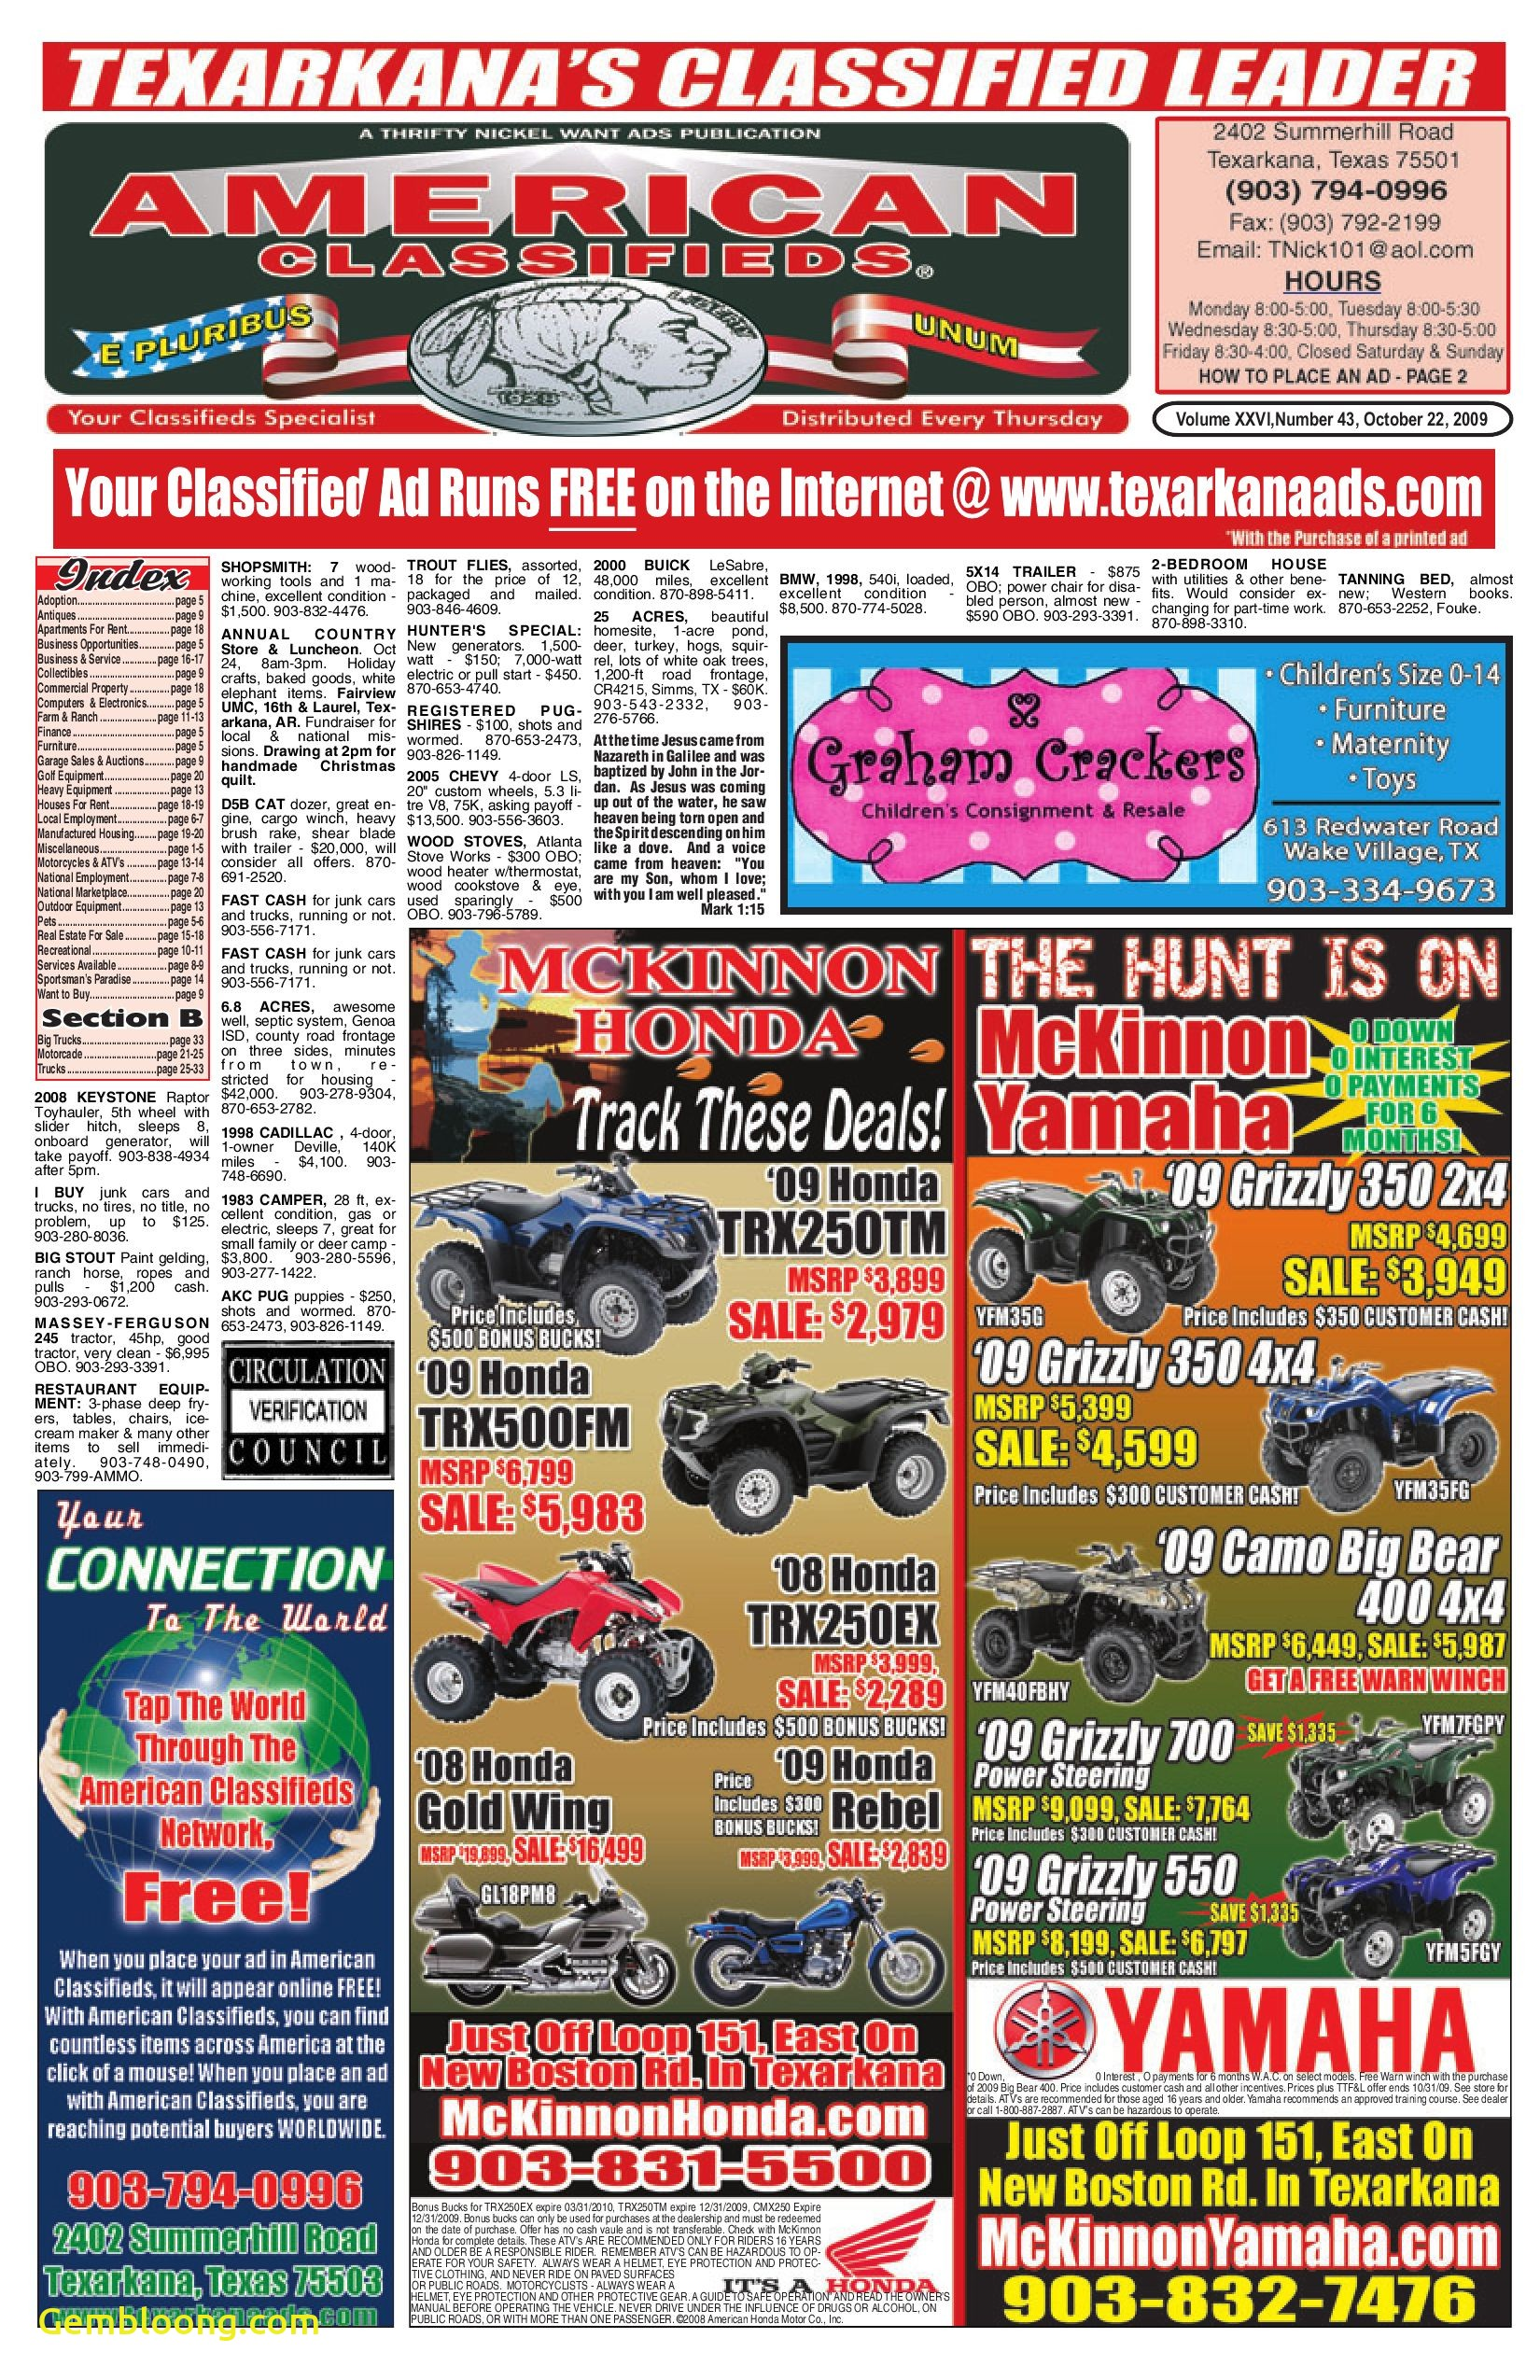 Carfax Sign Up Free Elegant Texarkana American Classifieds 10 22 09 by American